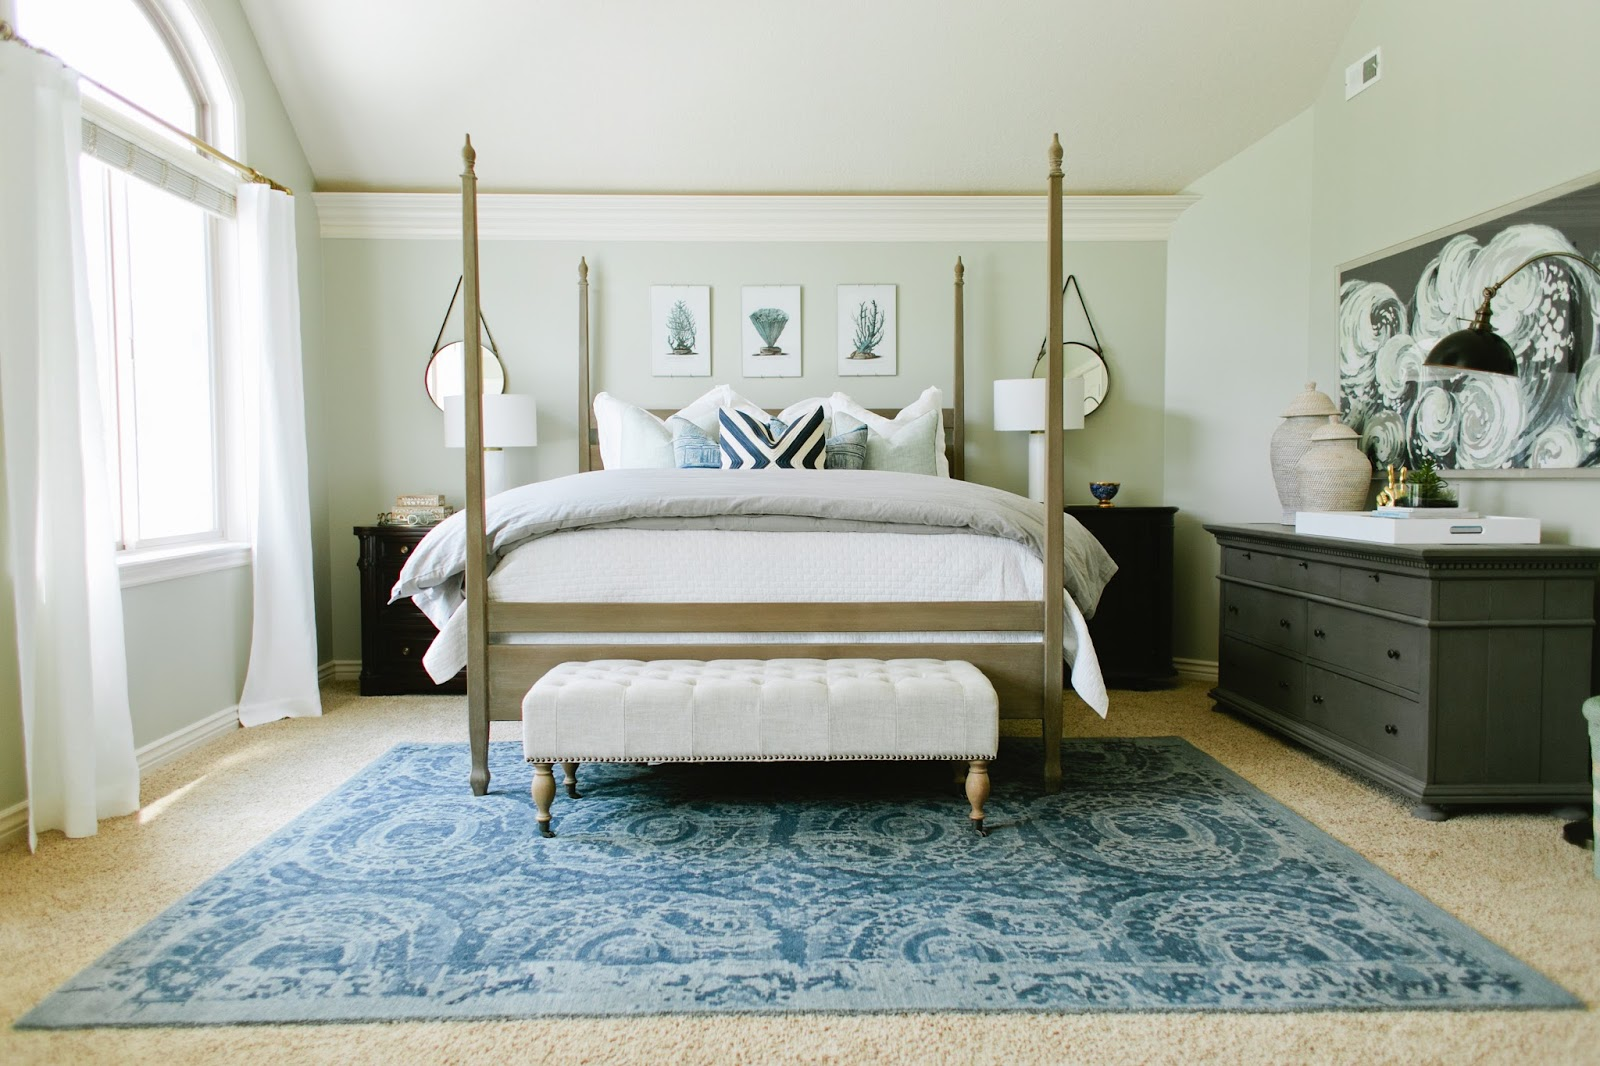 6th Street Design School : Soothing Blue & Gray Bedroom